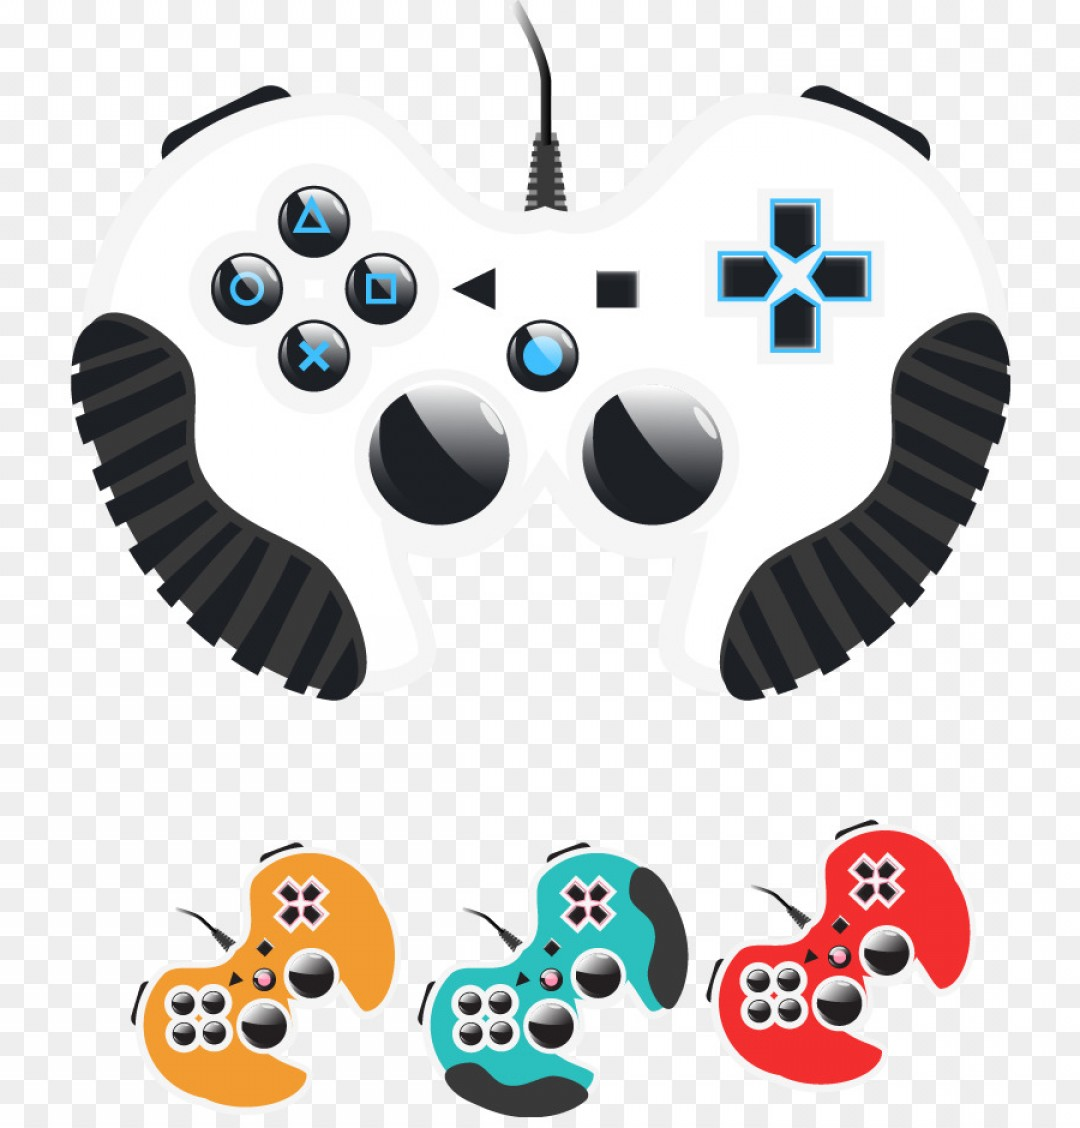 Xbox Game Controller Vector: Png Joystick Gamepad Game Controller Vector Gamepad